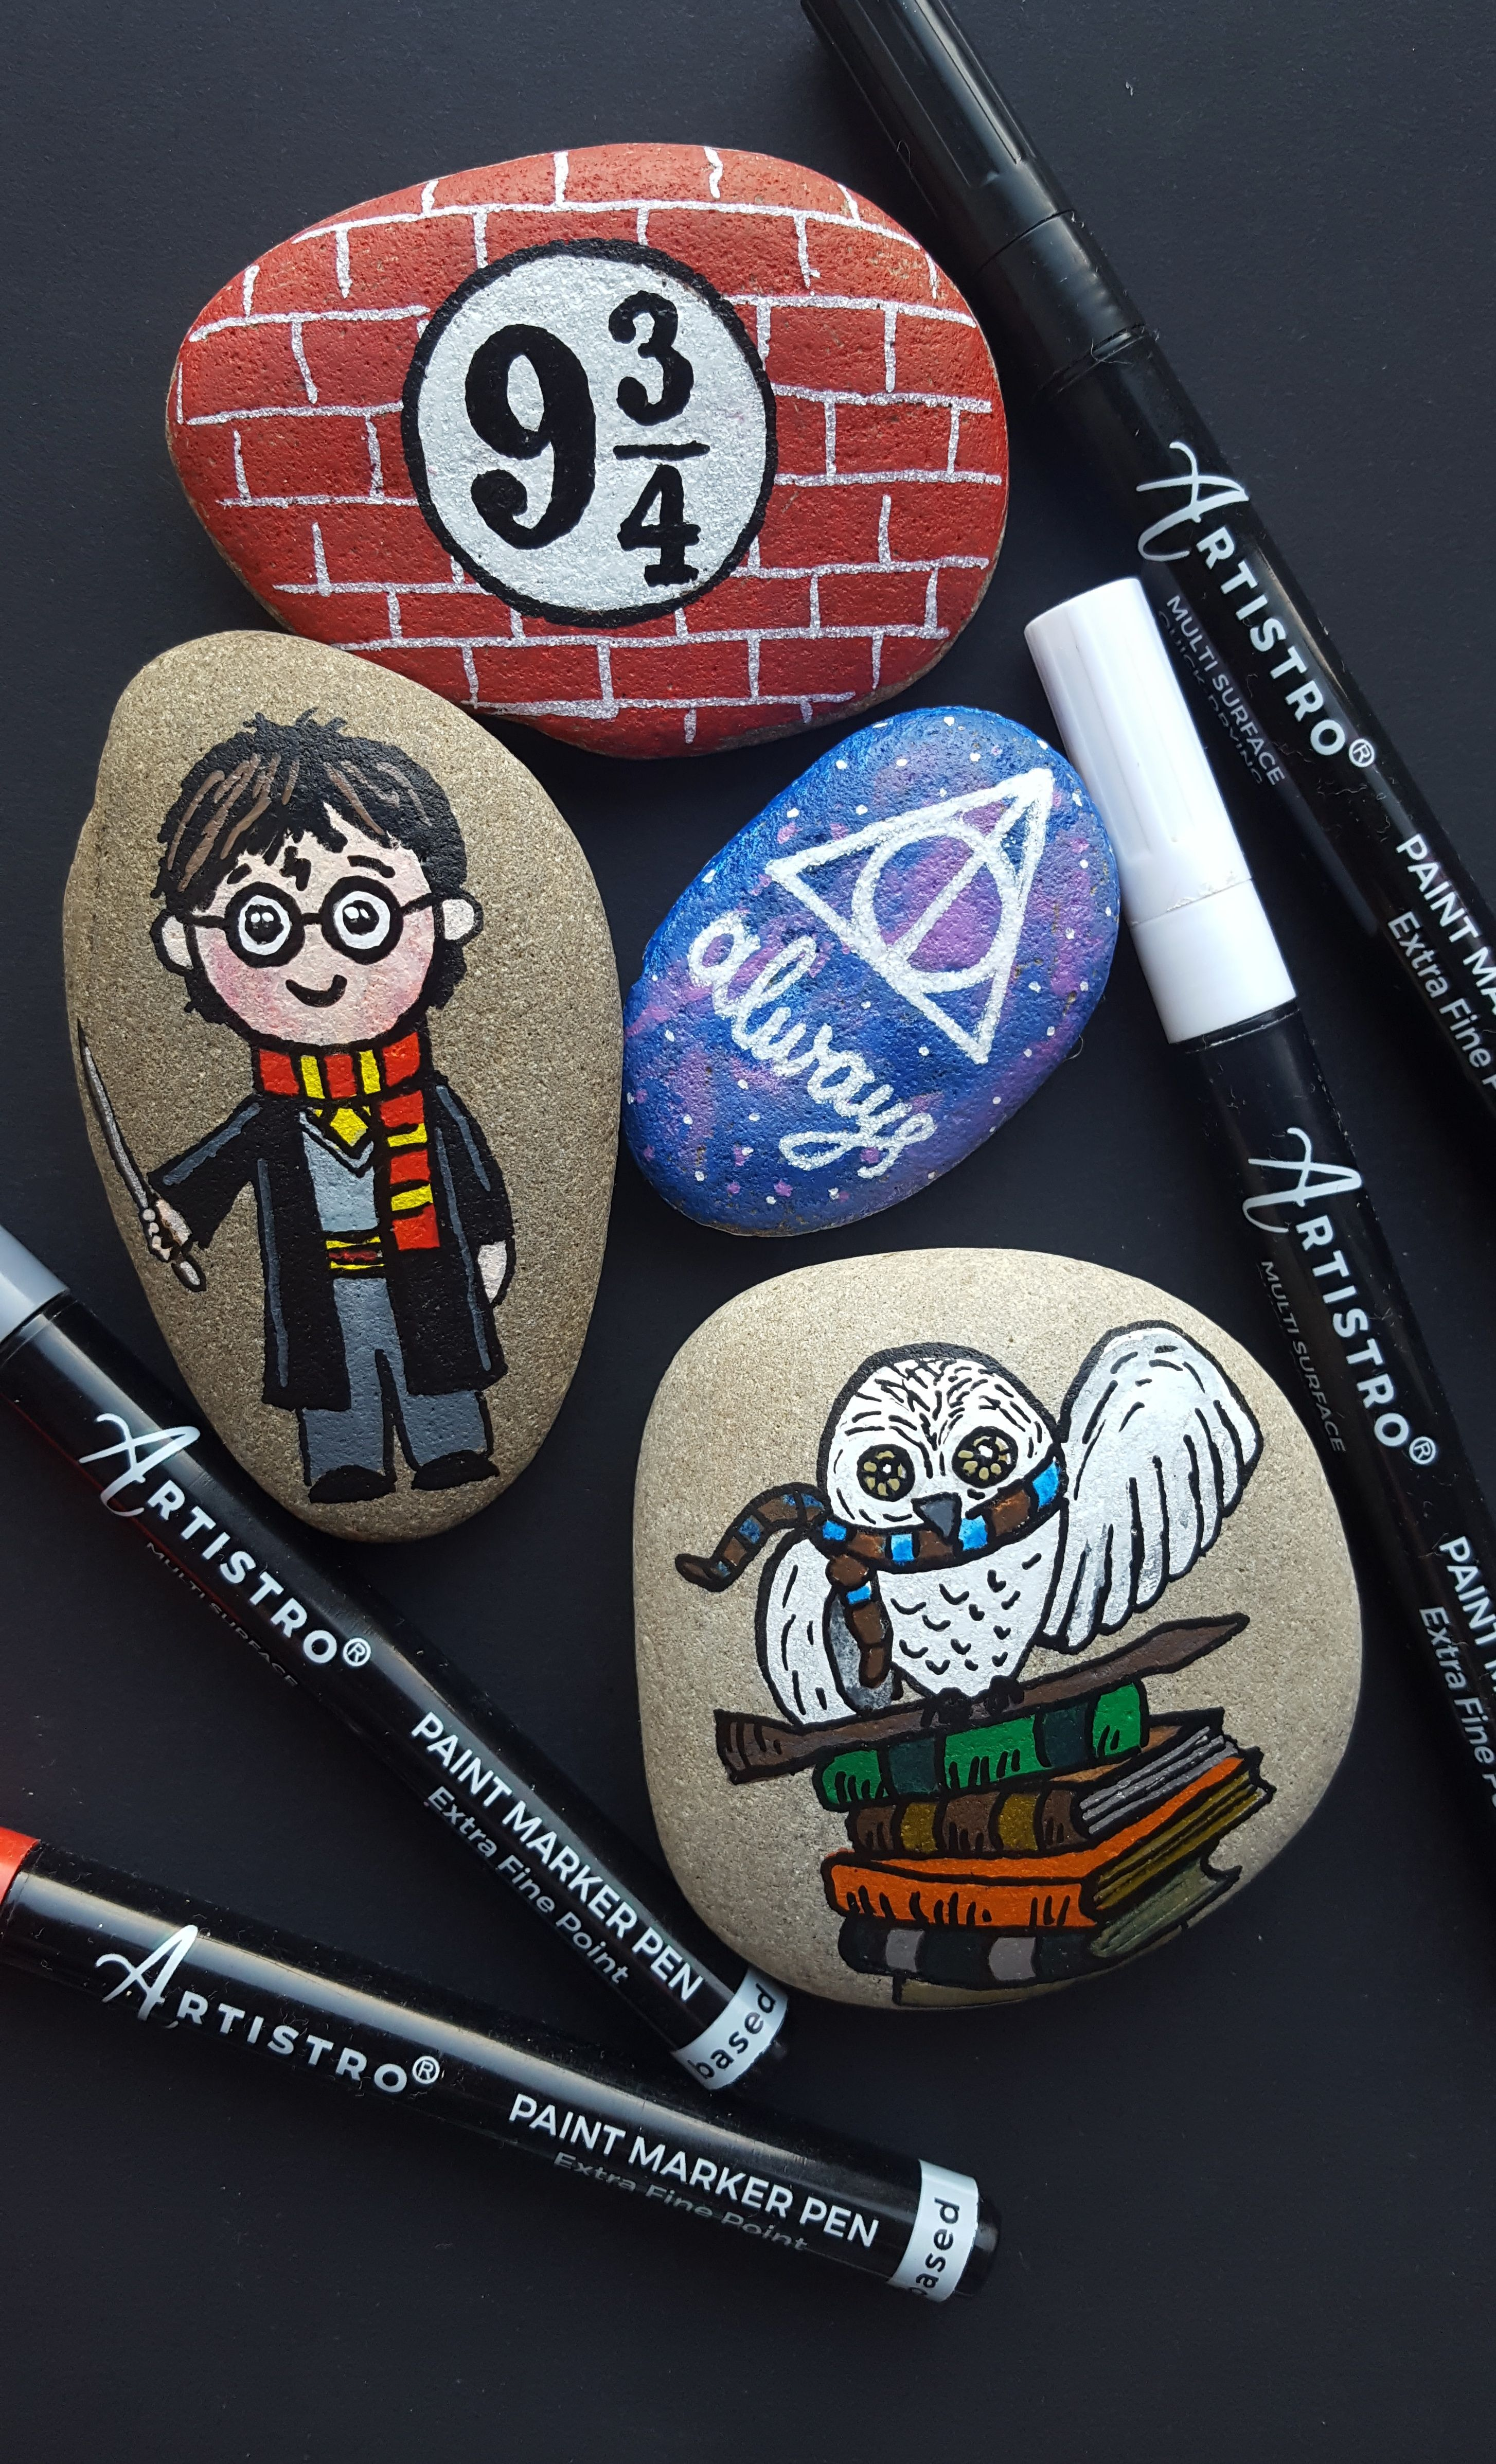 Harry Potter painted story stones with Artistro 30 acrylic paint pens. Harry Potter painted story stones with Artistro 30 acrylic paint pens.